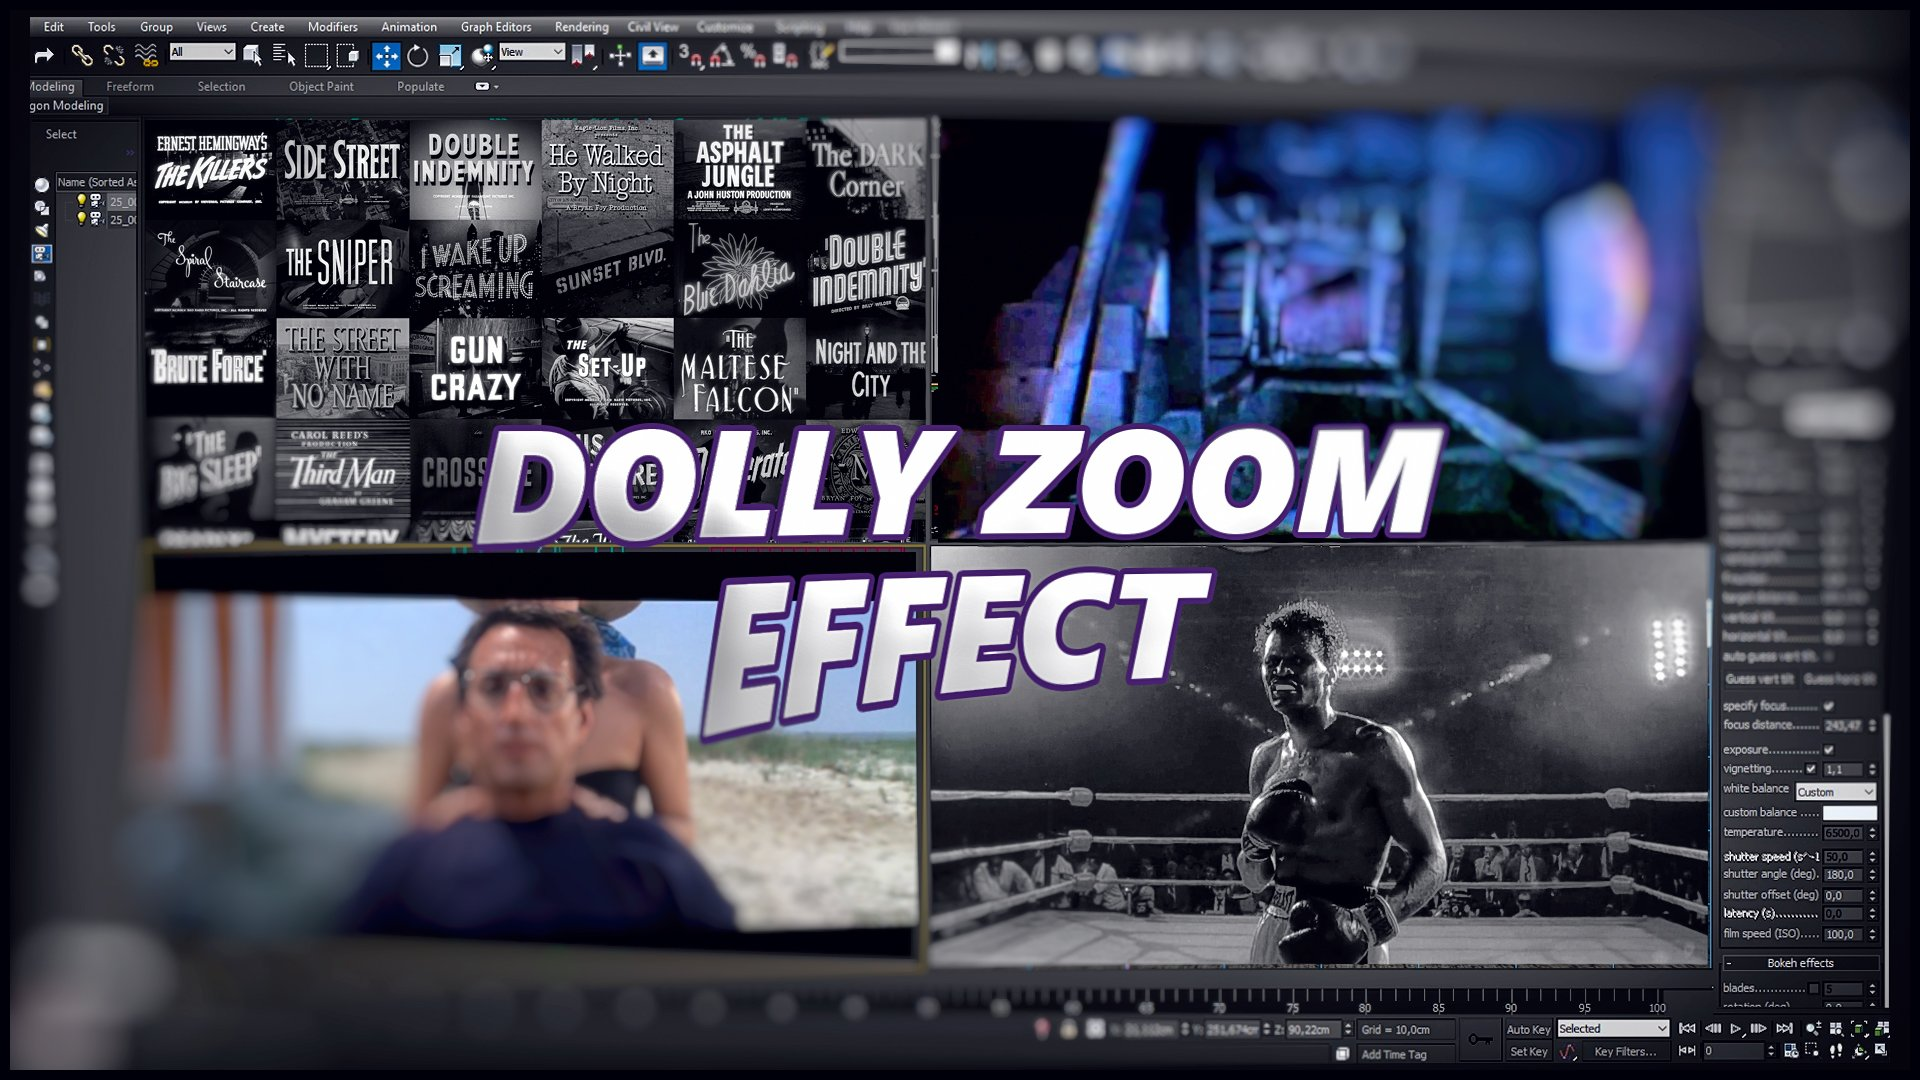 Dolly Zoom Effect (S E R E B R Y A K O V)